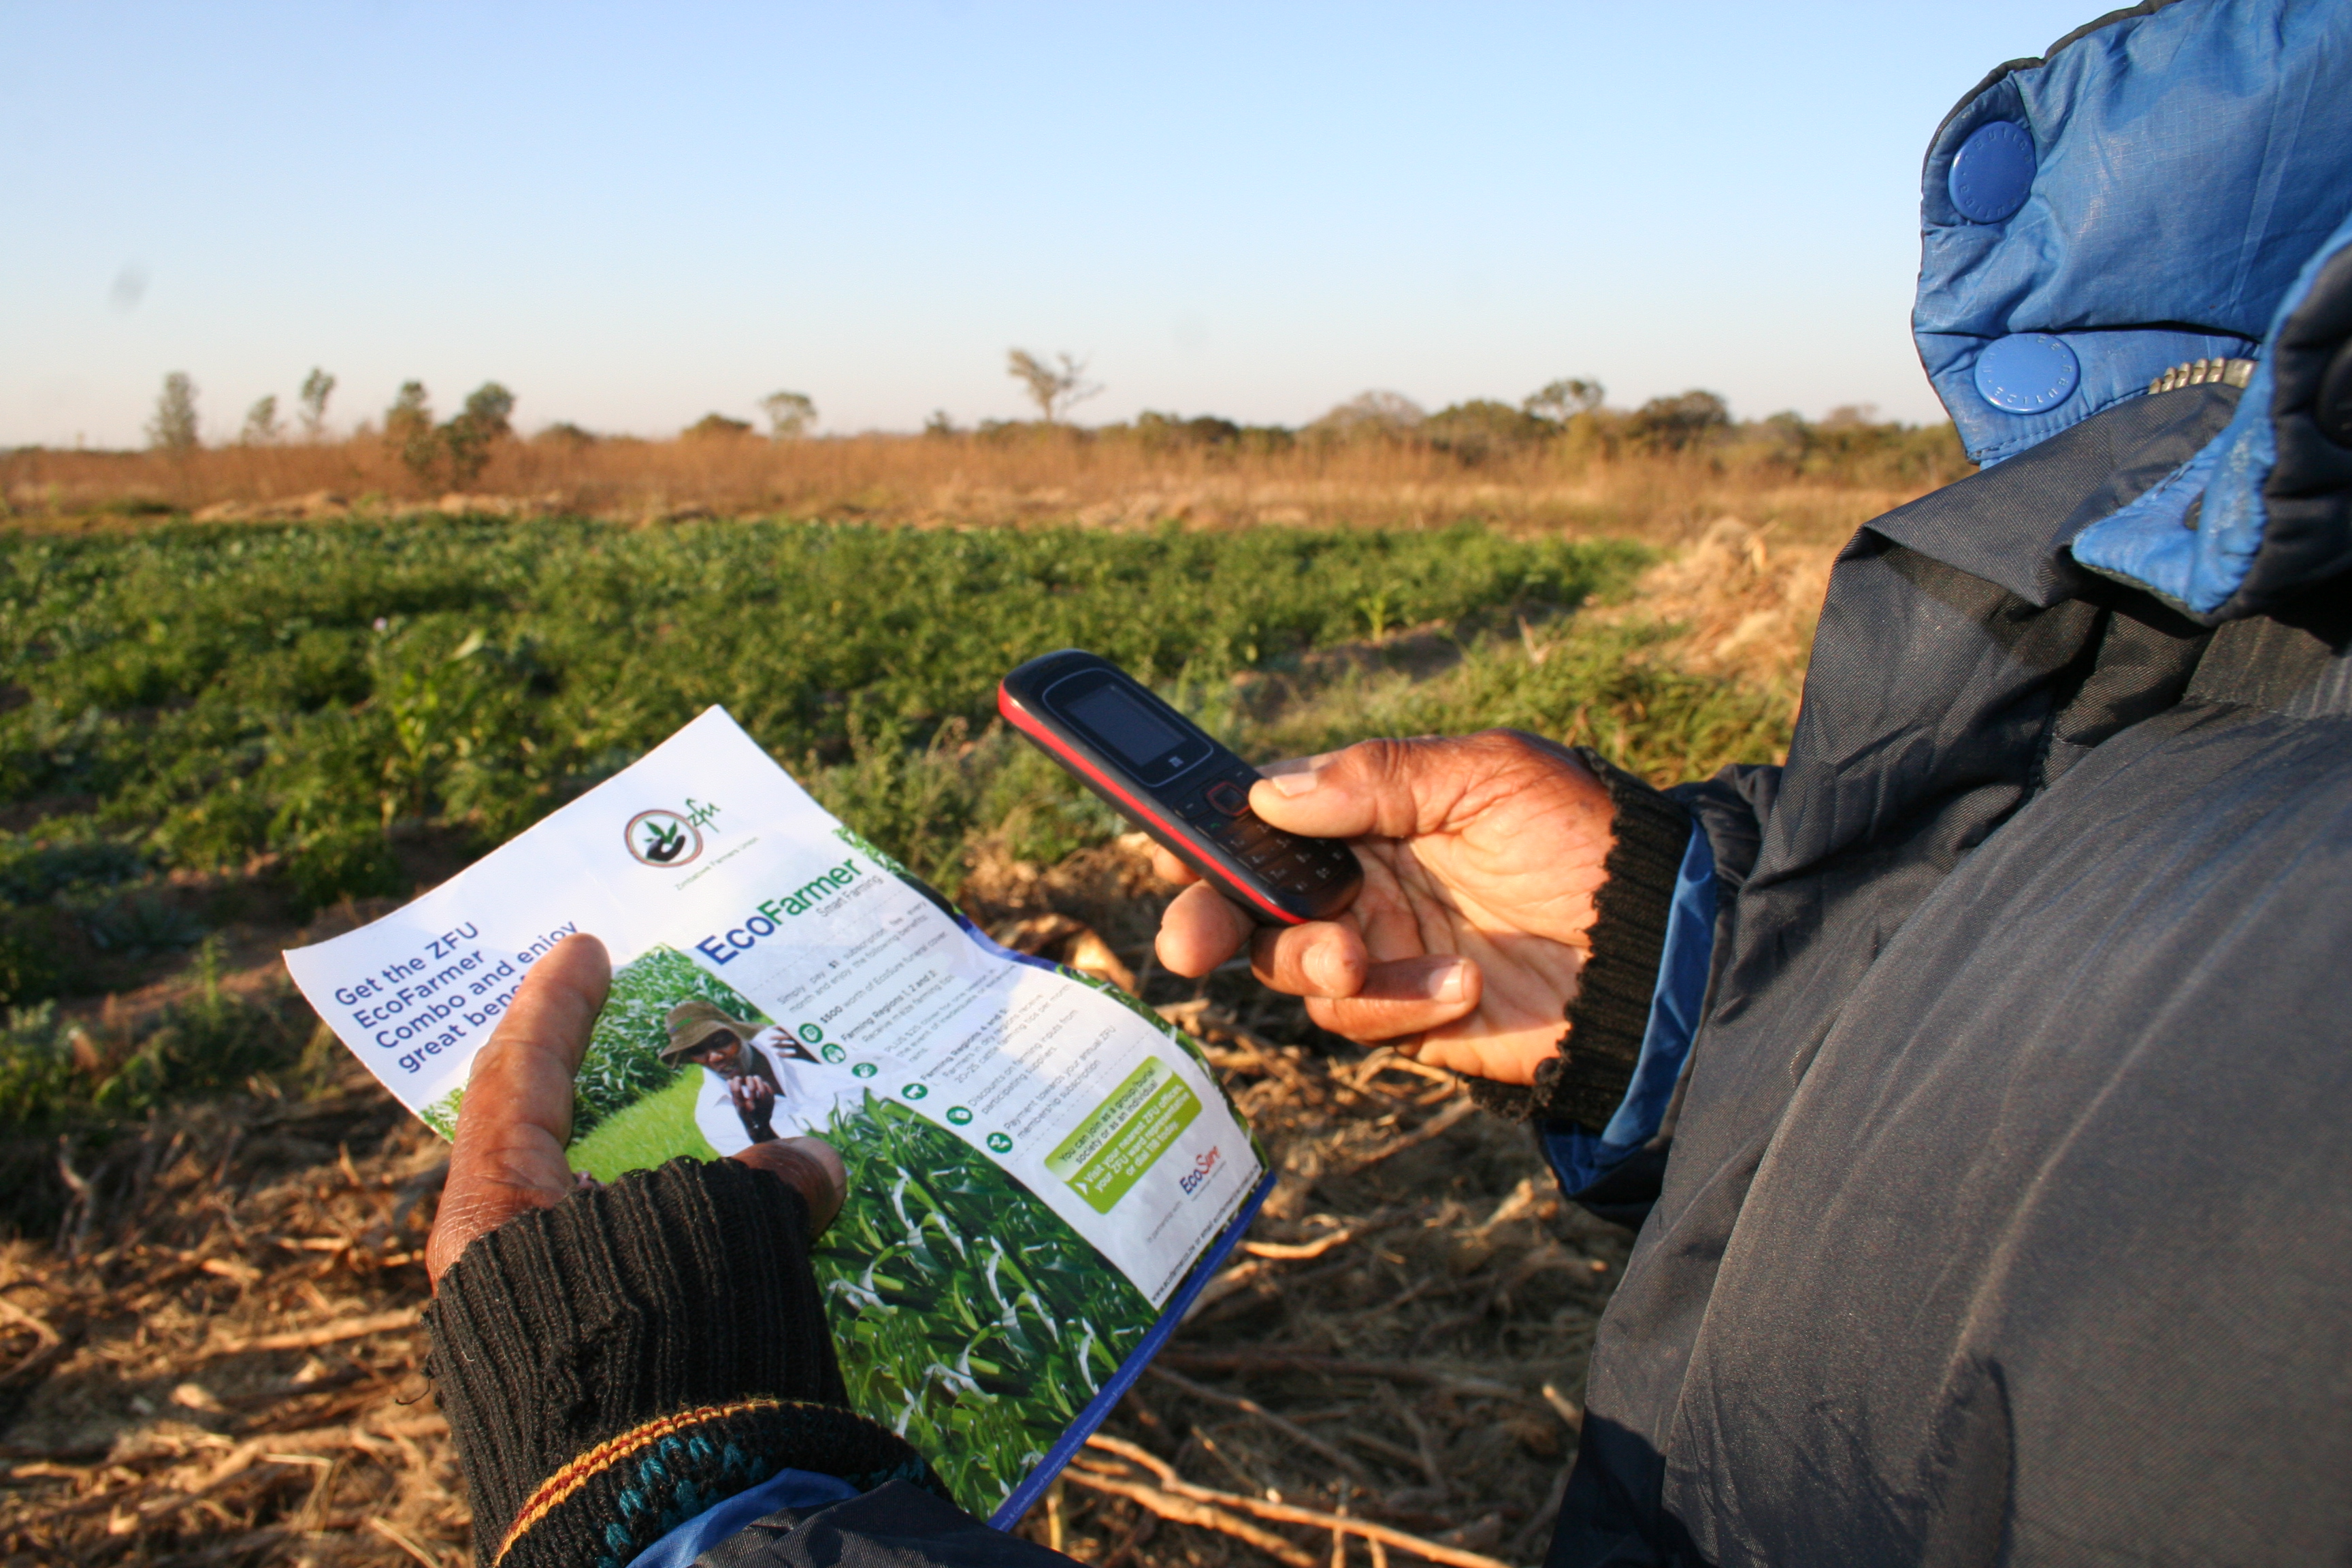 Smallholder farmers in Zimbabwe can benefit from real time weather information and weather index insurance through the ZFU-Ecofarmer Combo bundle